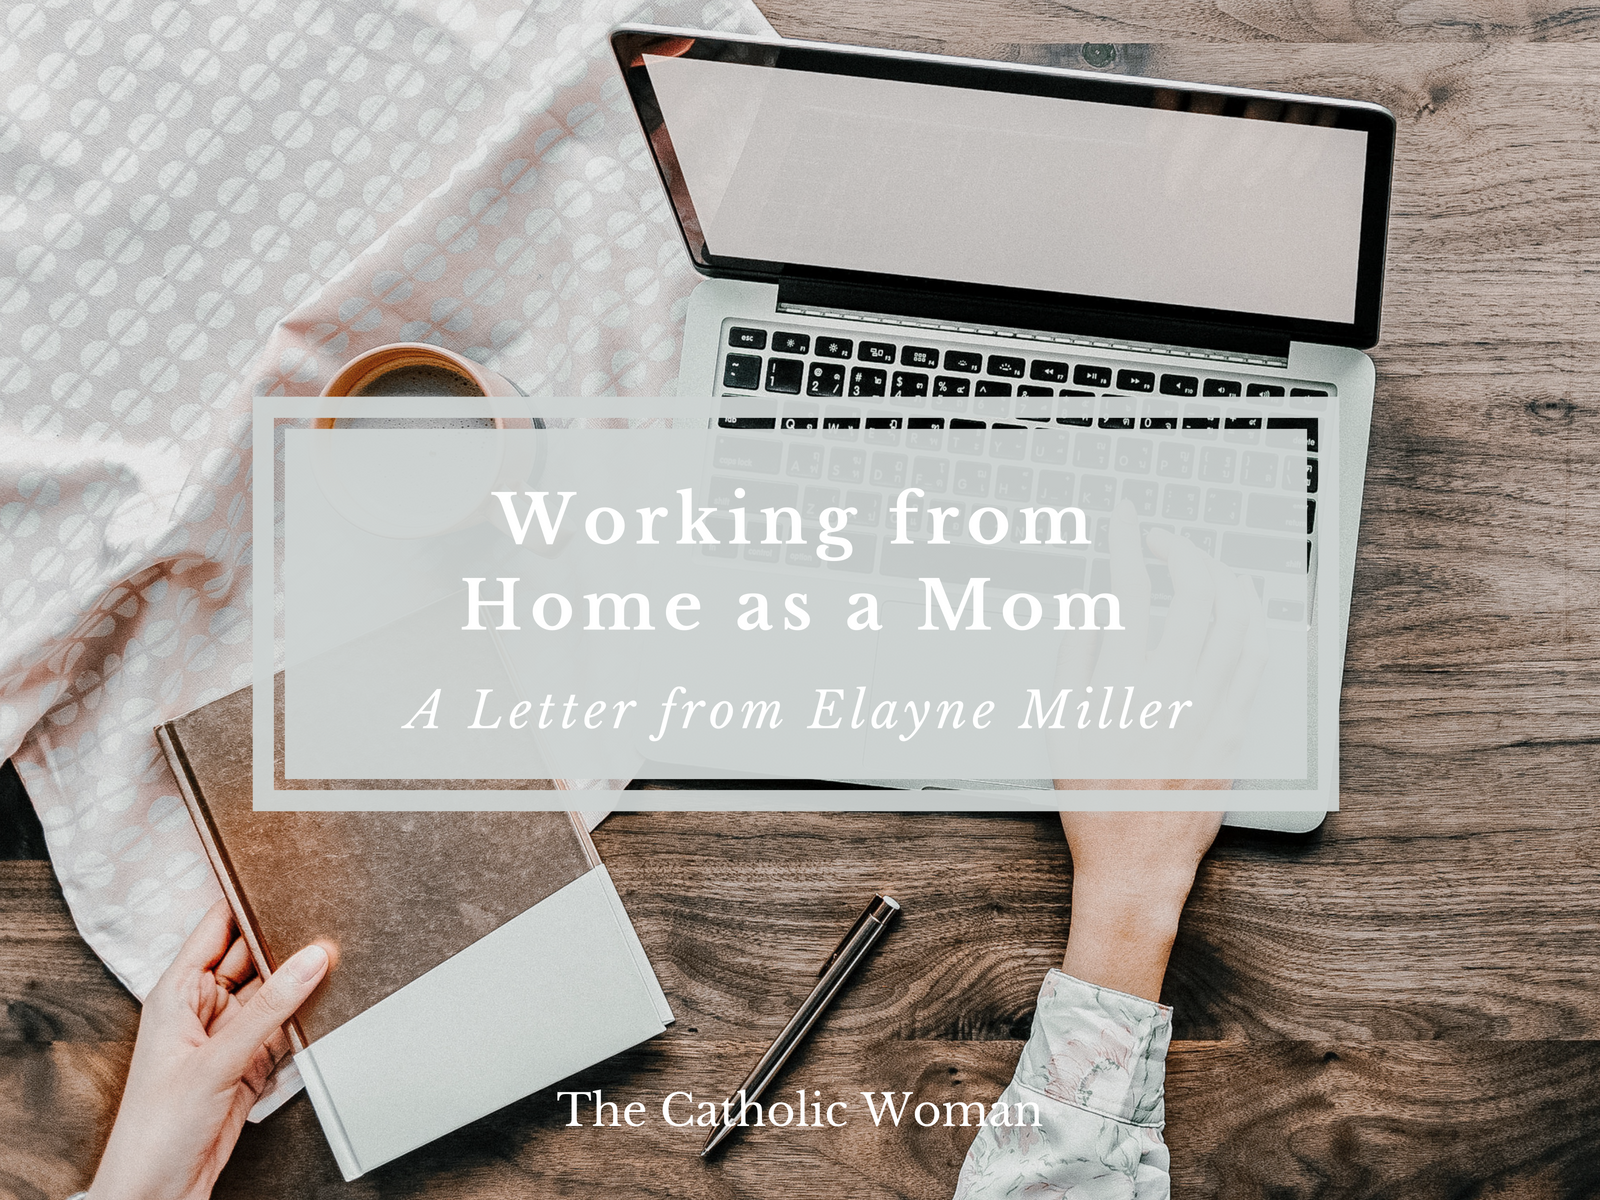 Working from Home as a Mom